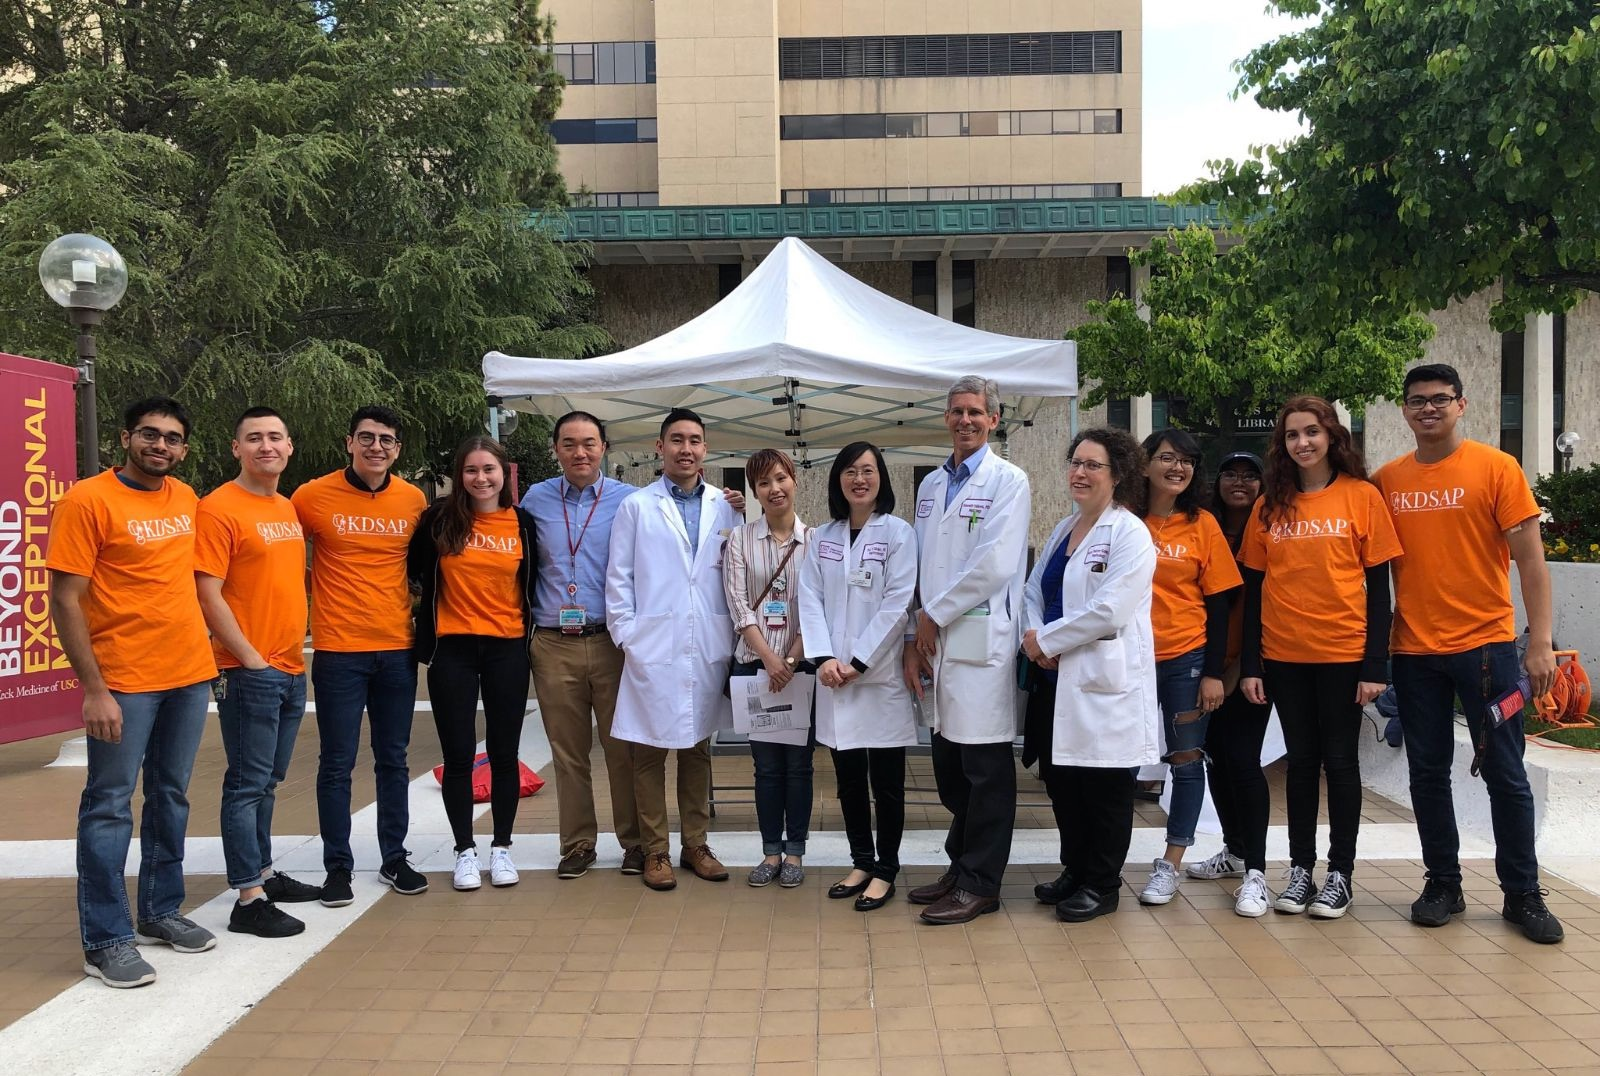 Keck School of Medicine of USC Hosts World Kidney Day Health